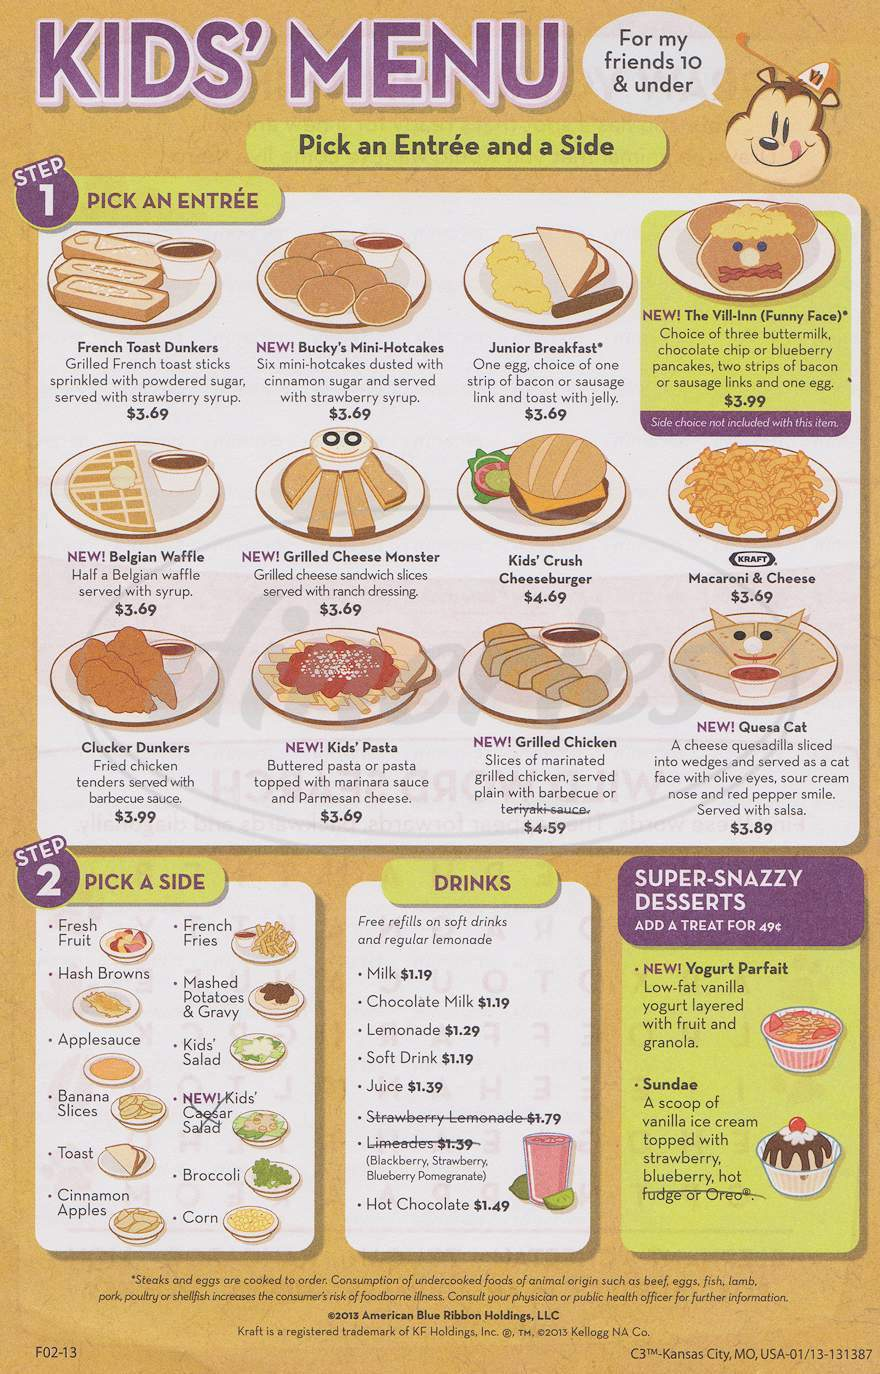 menu for Village Inn Family Restaurant